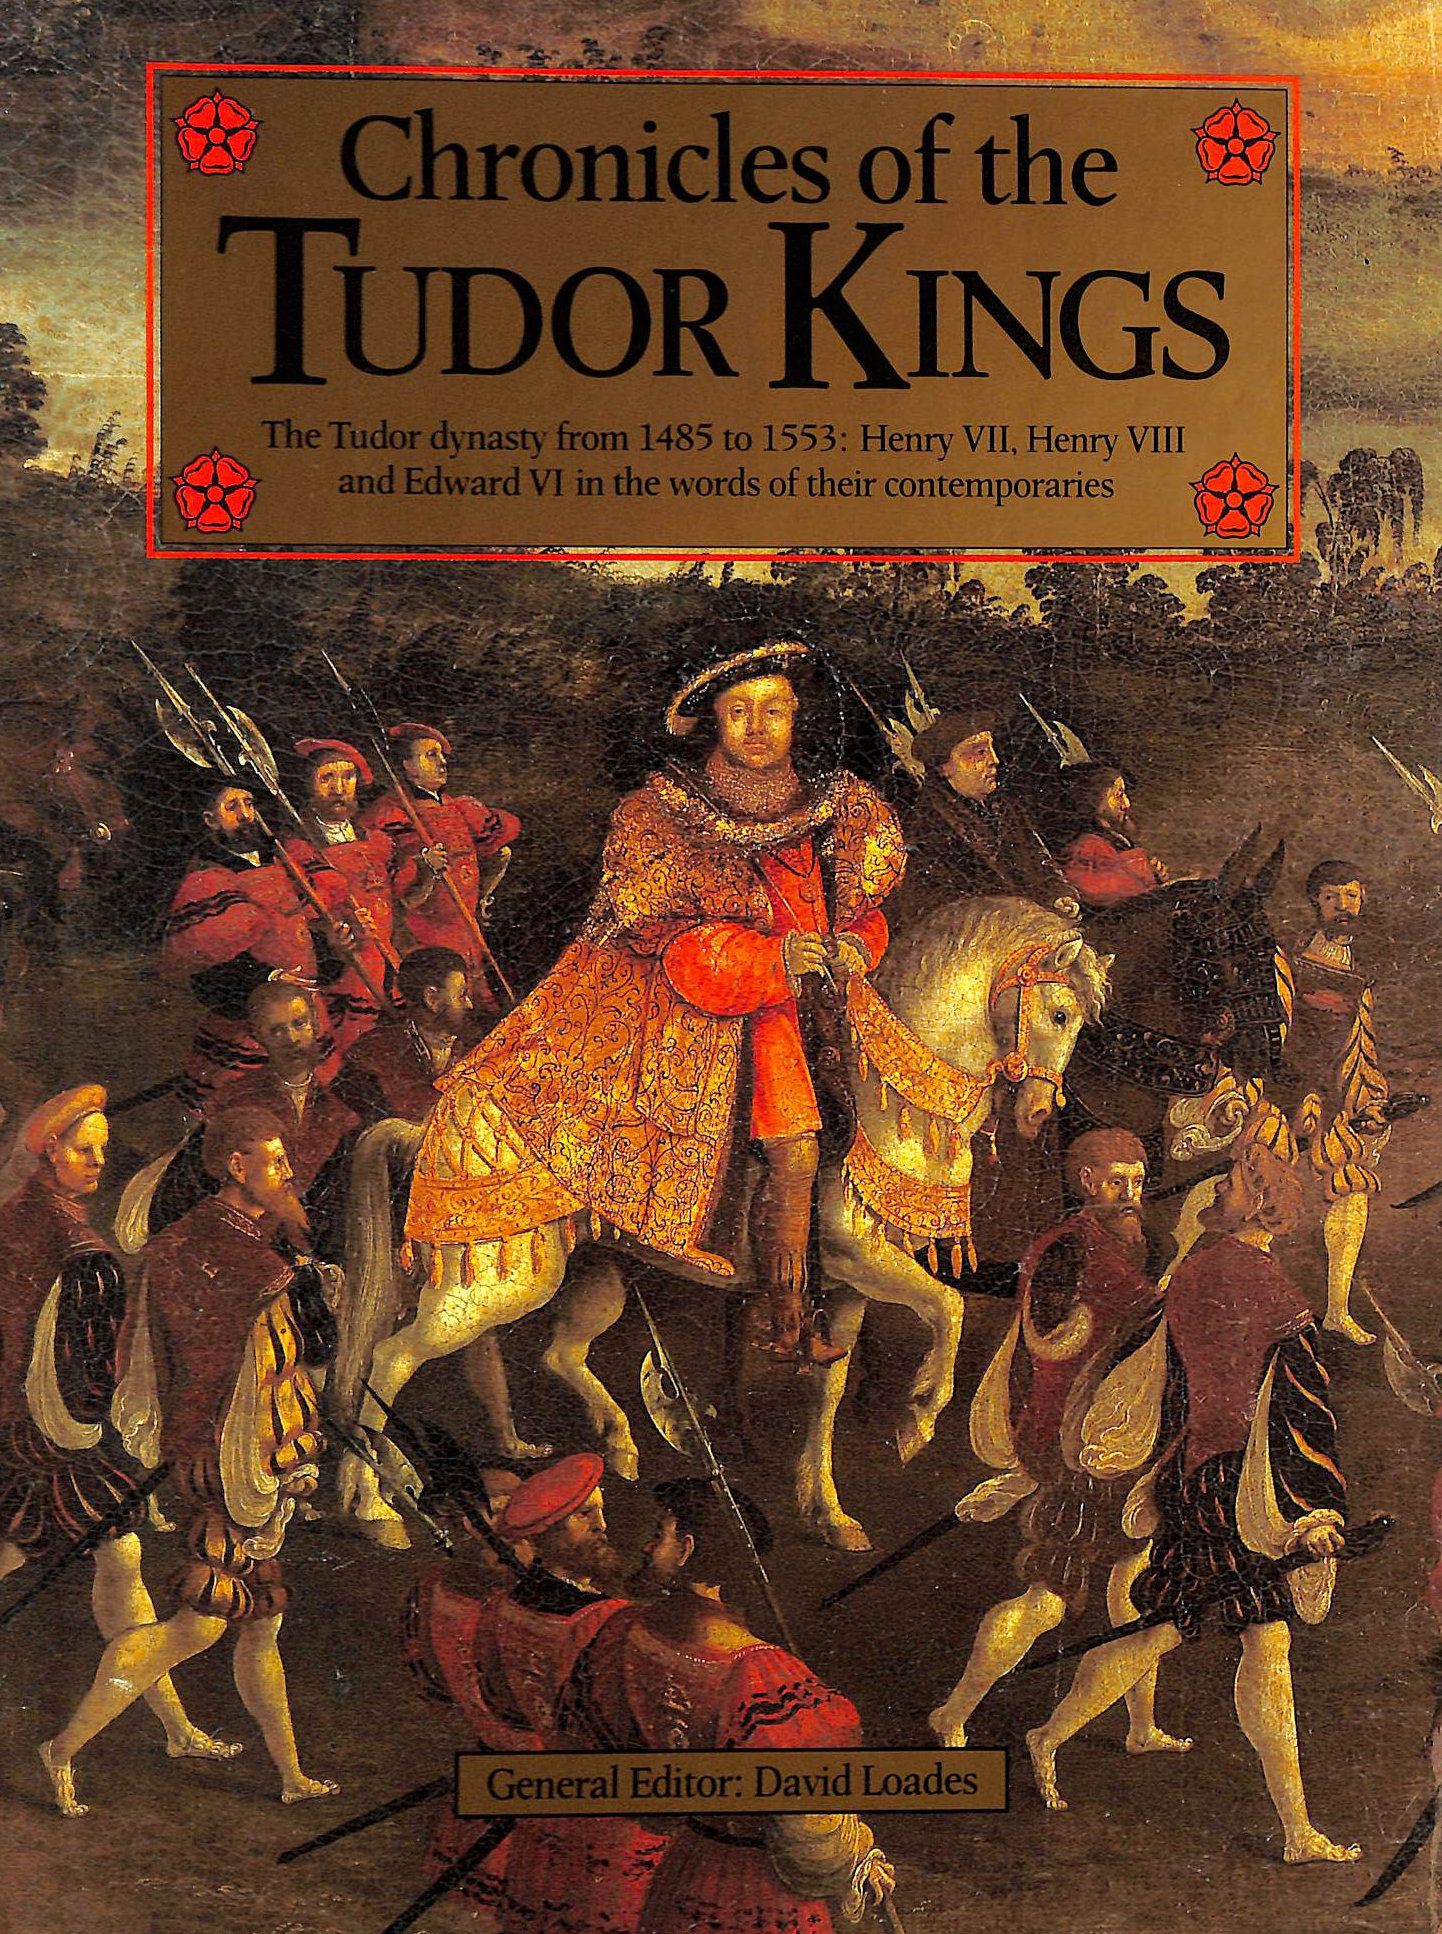 Image for Chronicles of the Tudor Kings : The Tudor Dynasty from 1485-1553 - Henry VII, Henry VIII and Edward IV in the Words of Their Contemporaries